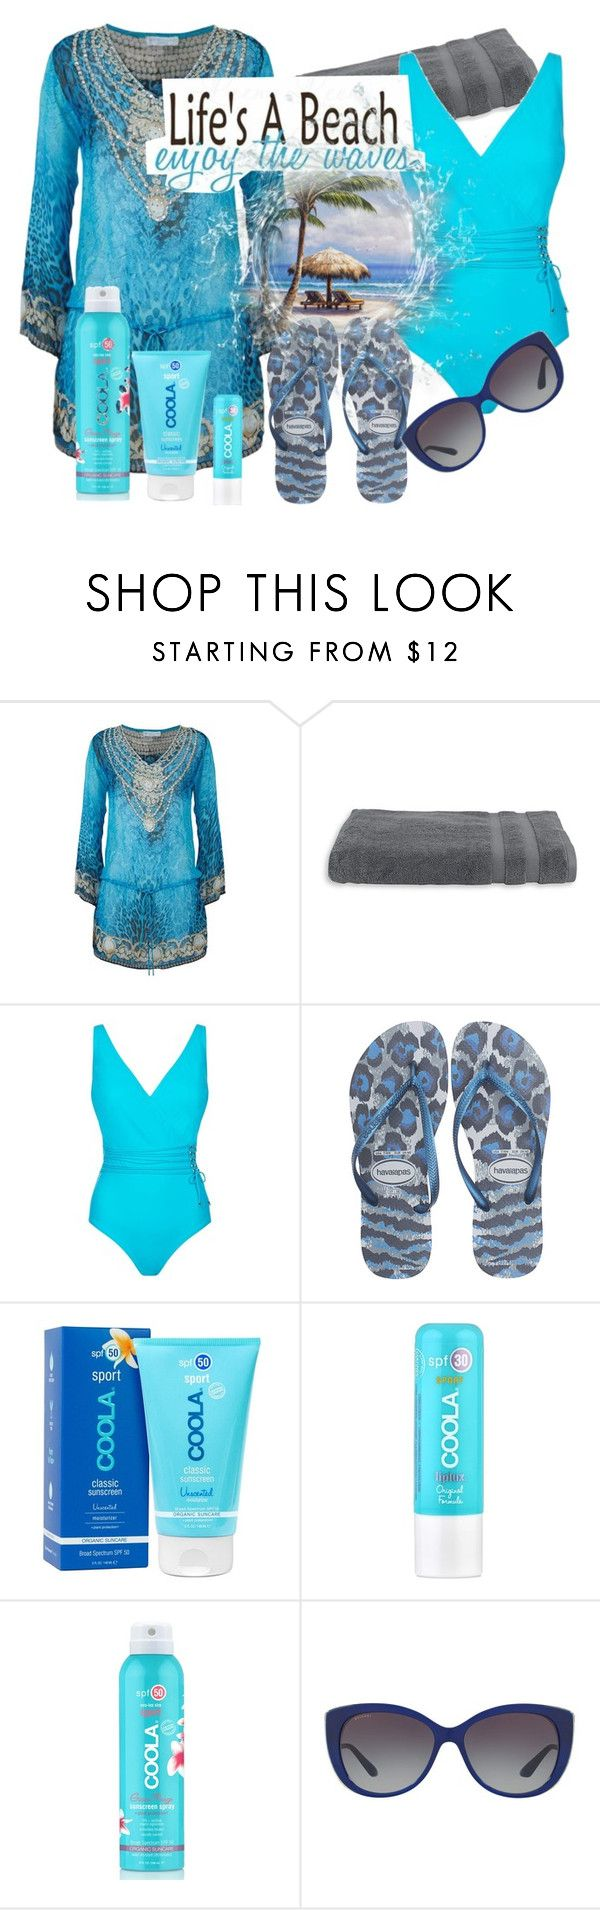 """Life's a Beach!"" by happychristy ❤ liked on Polyvore featuring ELIZABETH HURLEY beach, Lord & Taylor, Gottex, Havaianas, COOLA Suncare, Bulgari, swimsuit, beachwear, beachstyle and skincare"